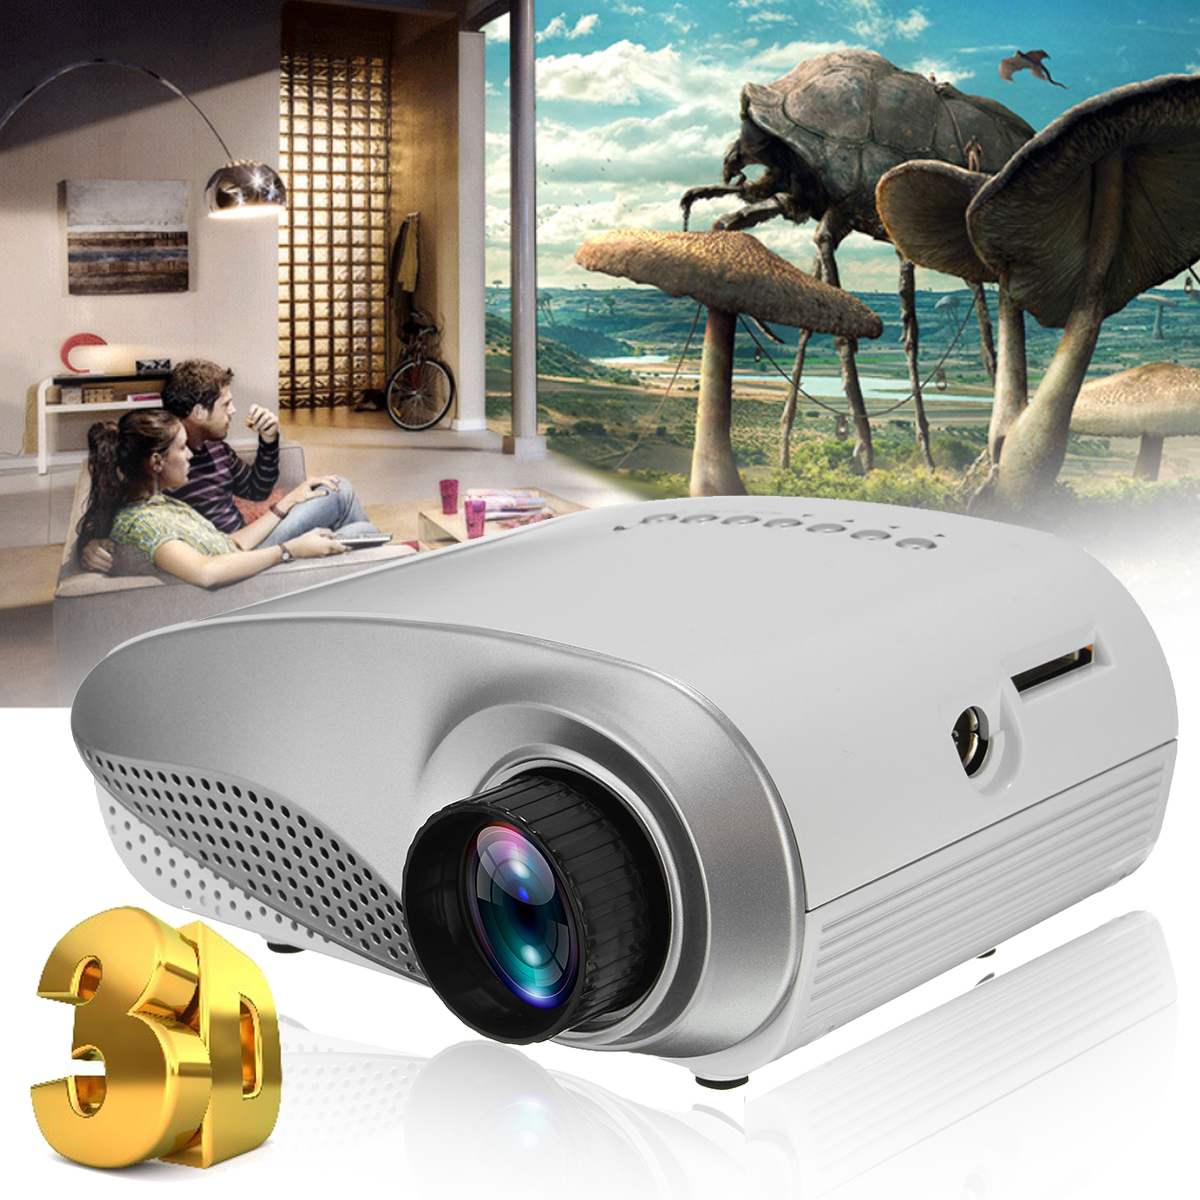 Home Mini Cinema Portable 1080P 3D HD LED Projector Multimedia Home Theater USB VGA HDMI TV Home Theatre System skylarpu new 5 1 inch lcd display screen panel for lmg7420plfc x lmg7420plfc embroidery machine lcd screen display panel